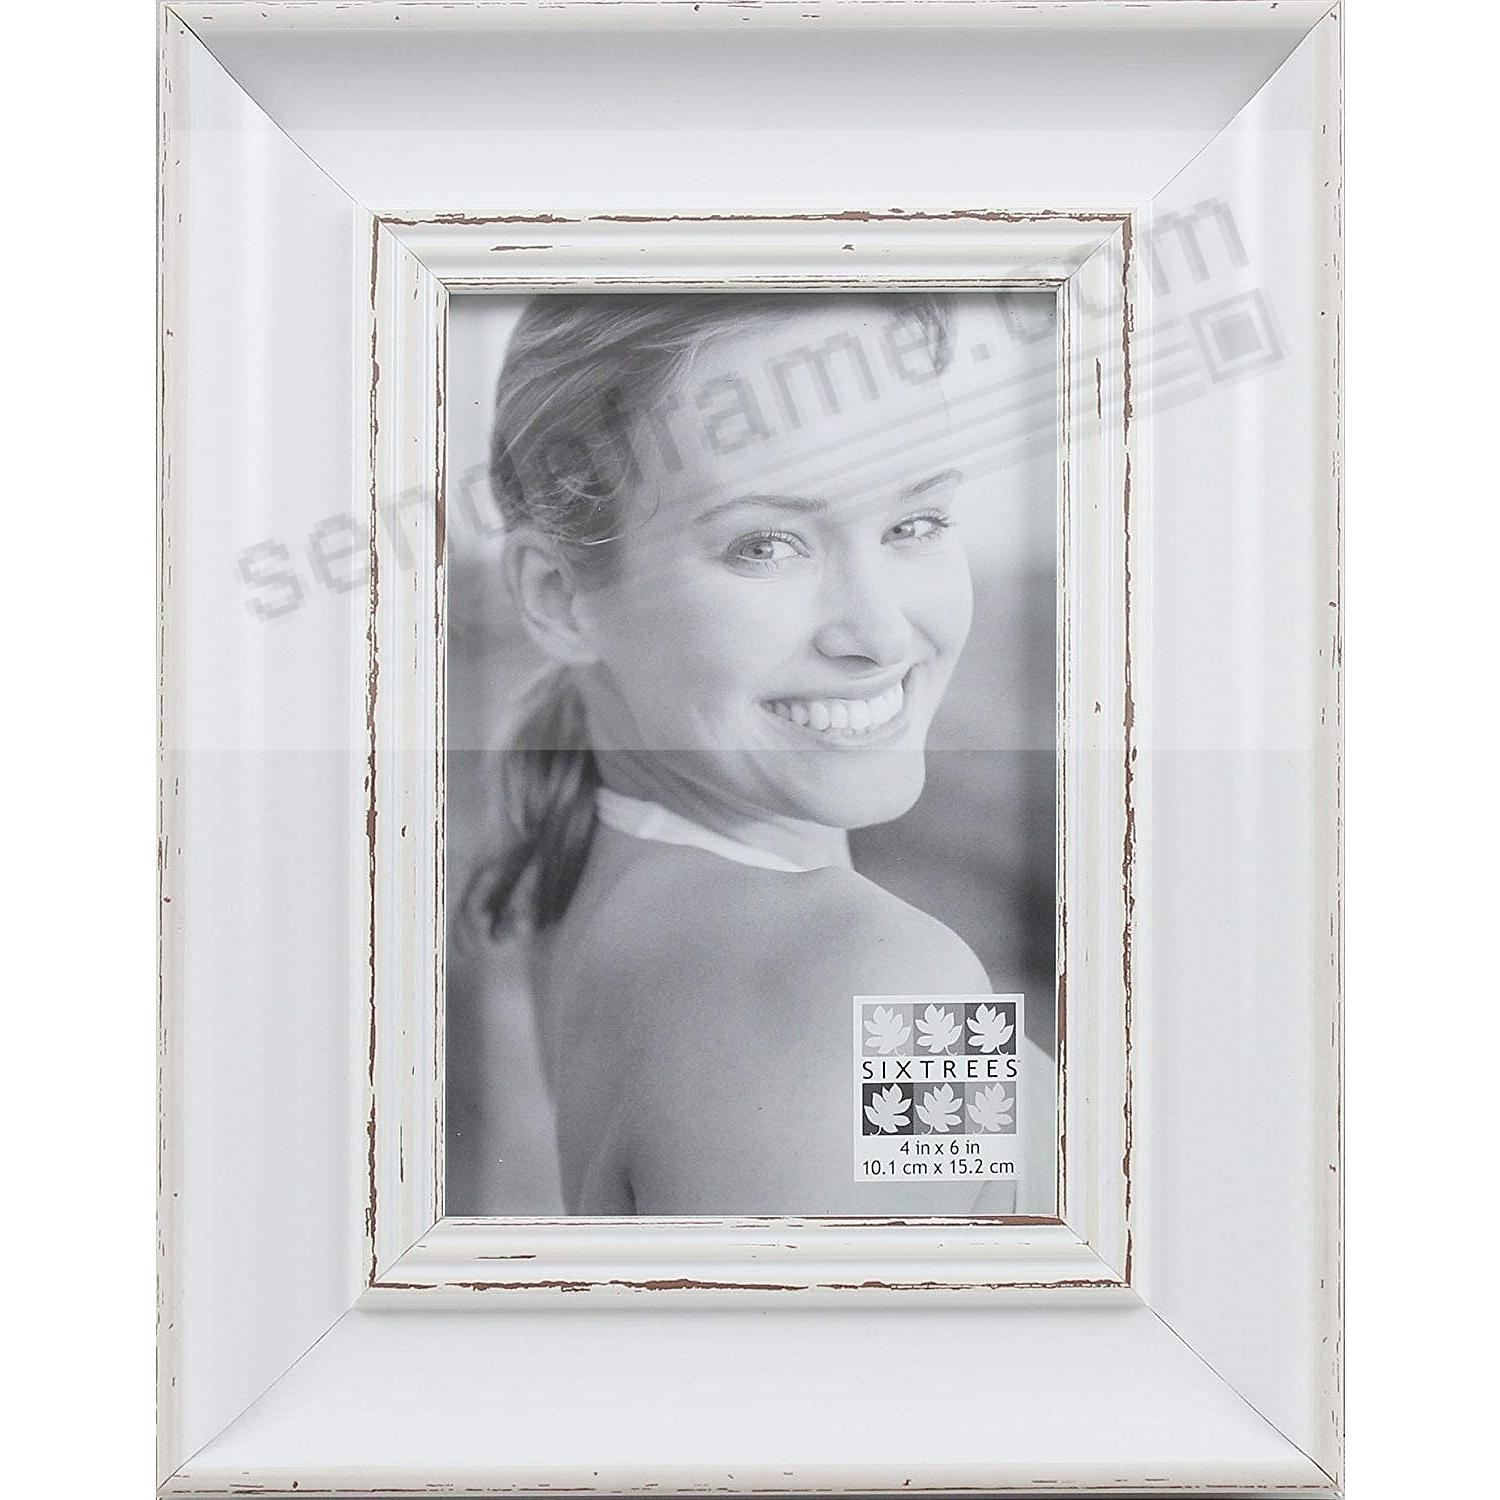 White Washed Wood Picture Frames Choice Image - origami instructions ...